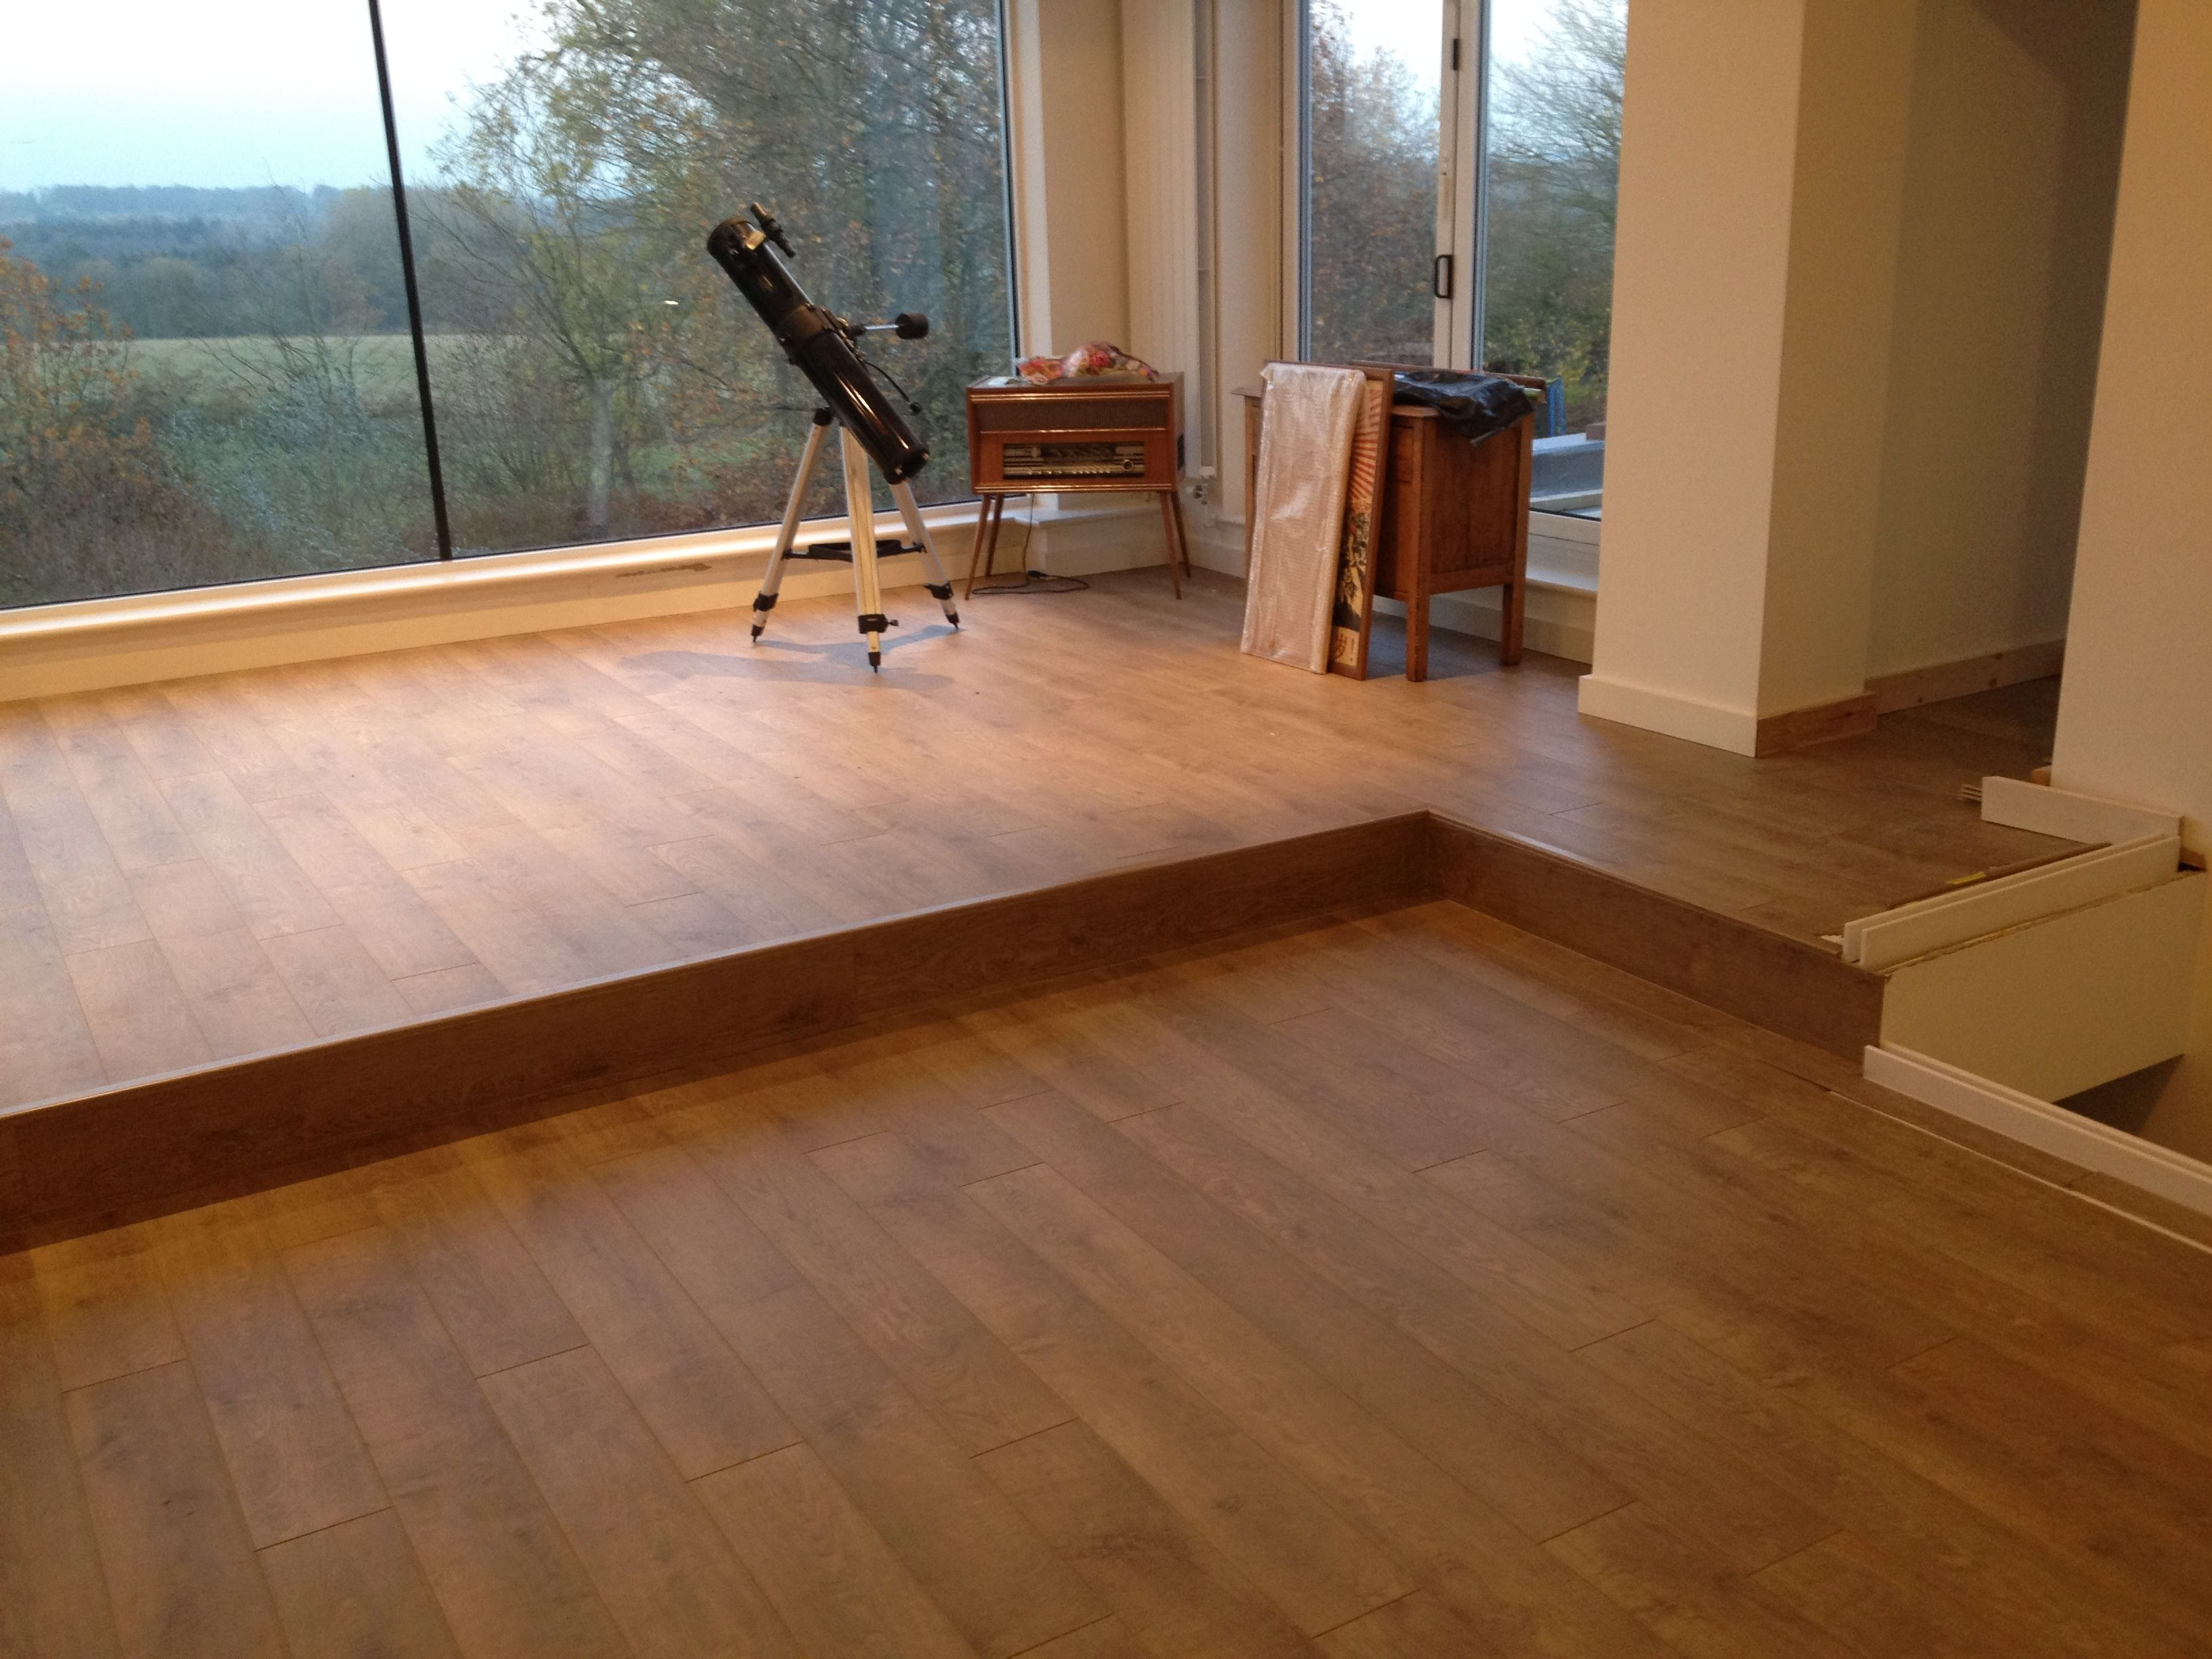 Most Durable Hardwood Floor Will Make Your House Appears With Awe